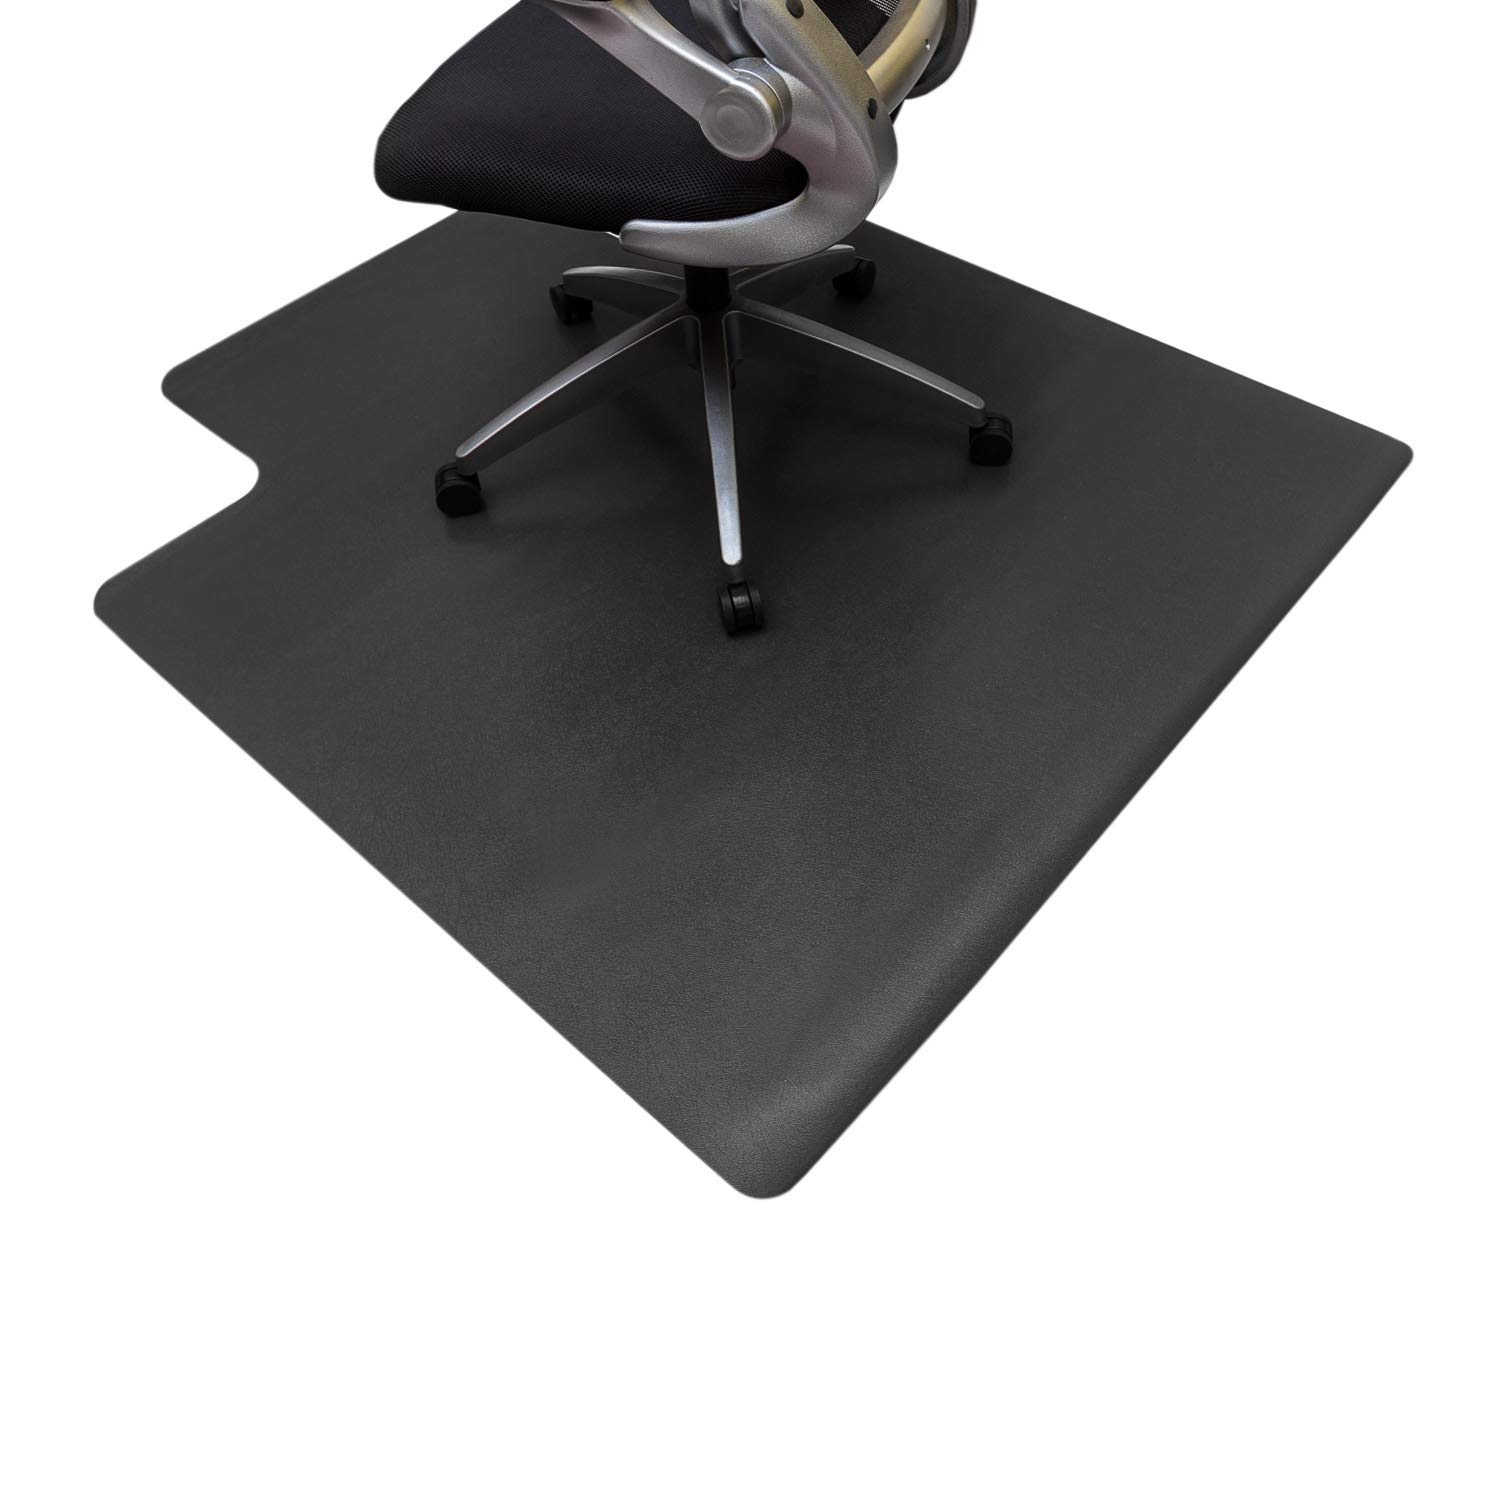 Resilia Office Desk Chair Mat with Lip - PVC Mat for Hard Floor Protection, Black, 45 inches x 53 inches, Made in The USA